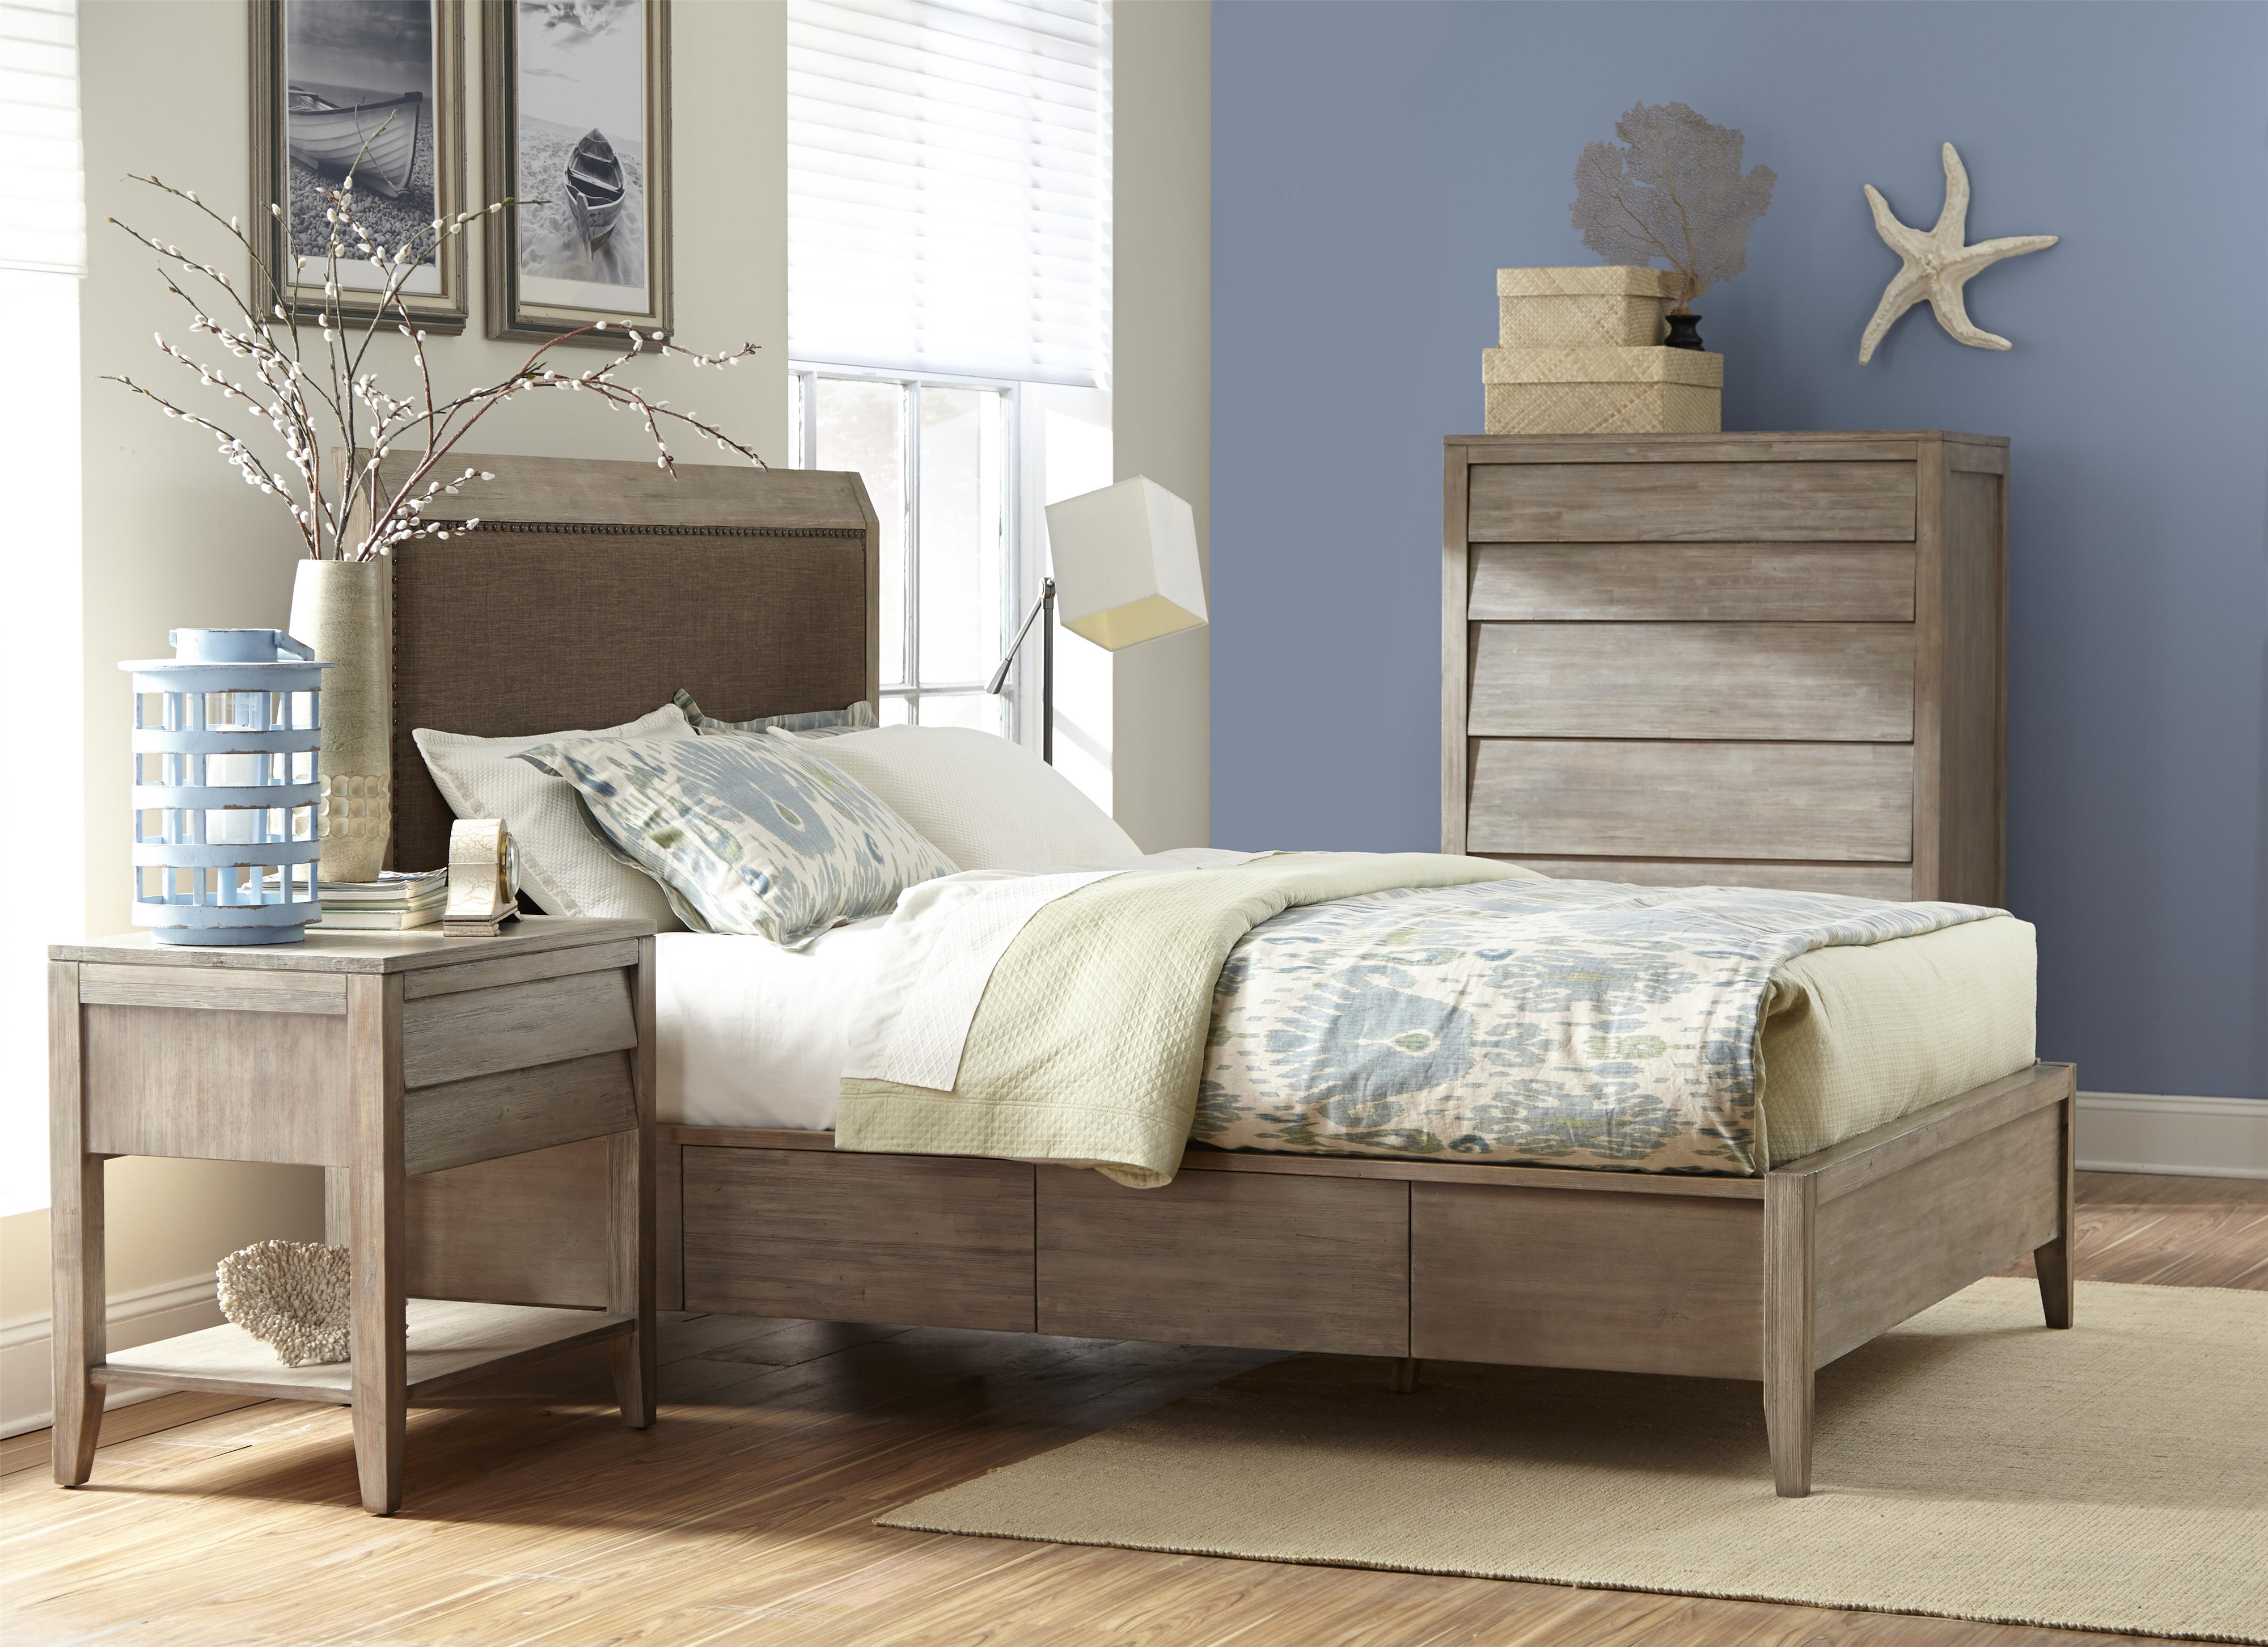 3F3227 Corliss Landing Contemporary King Upholstered Double Sided Storage  Bed 317540002904 Most Effective Driftwood GreyMost Effective Driftwood Grey Bedroom Furniture   woodensigns info  . Driftwood Color Bedroom Furniture. Home Design Ideas